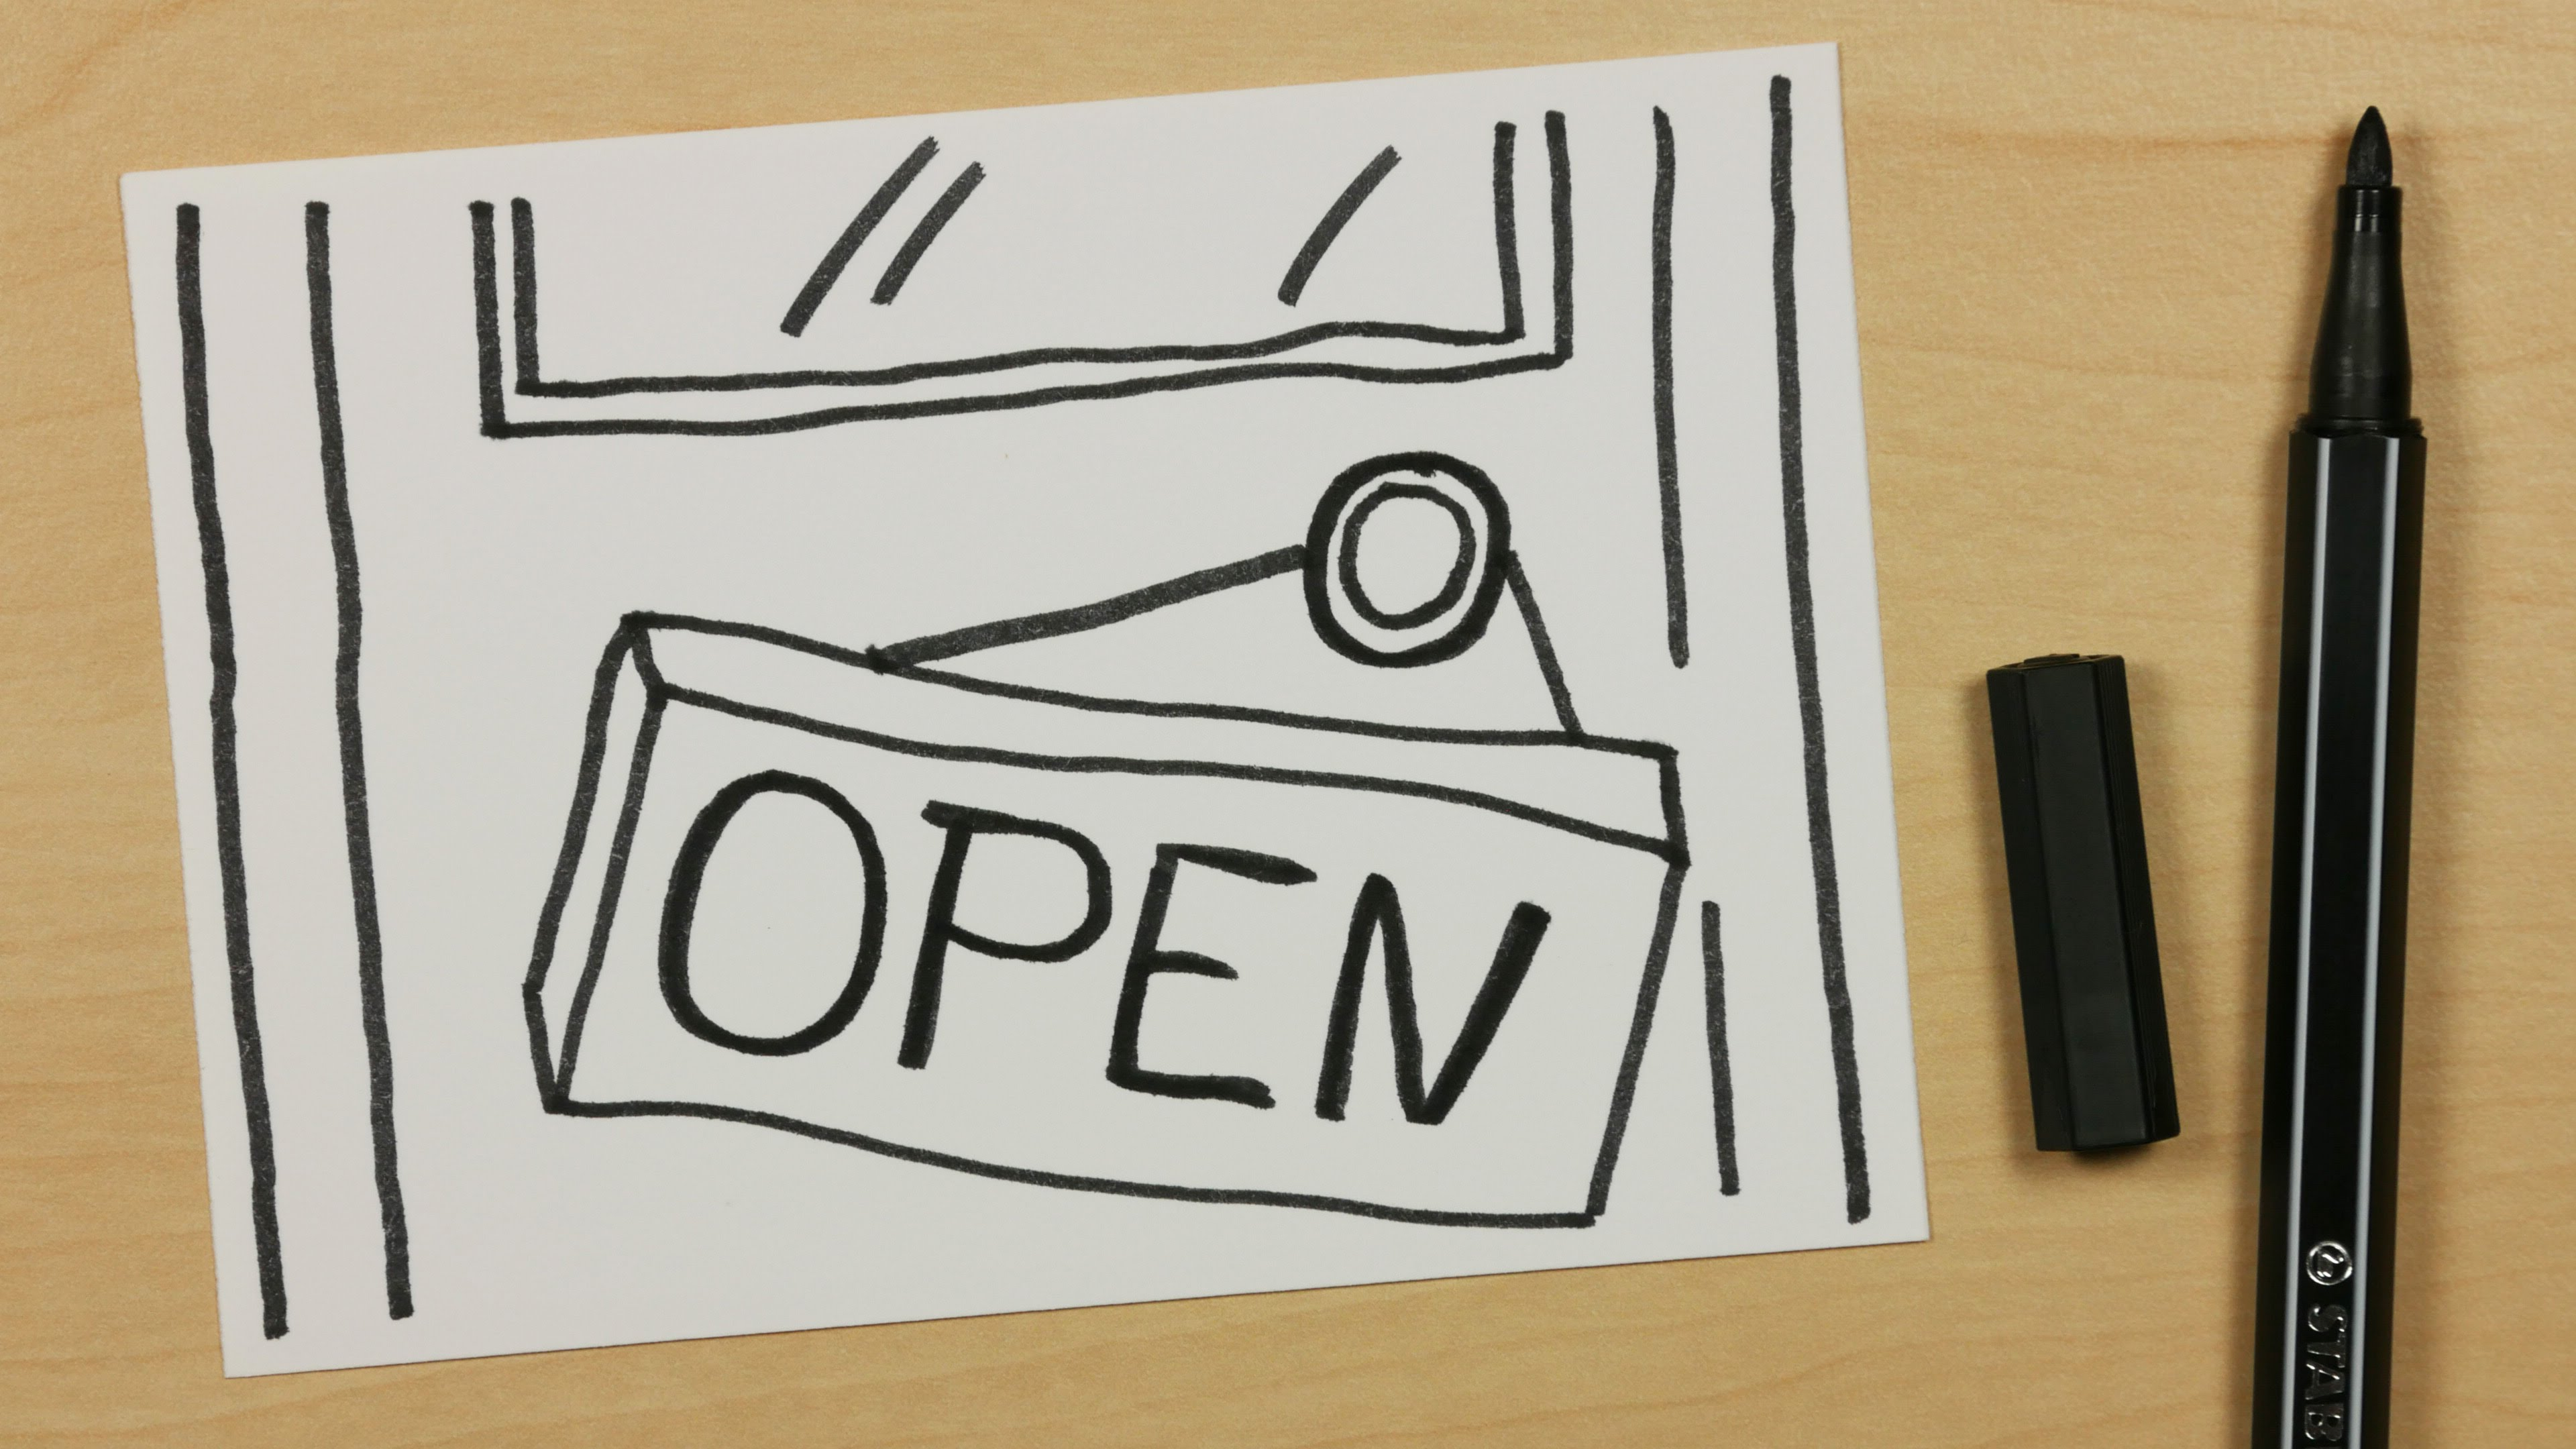 3840x2160 How To Draw A Open Hanging Shop Schild Or Store Sign